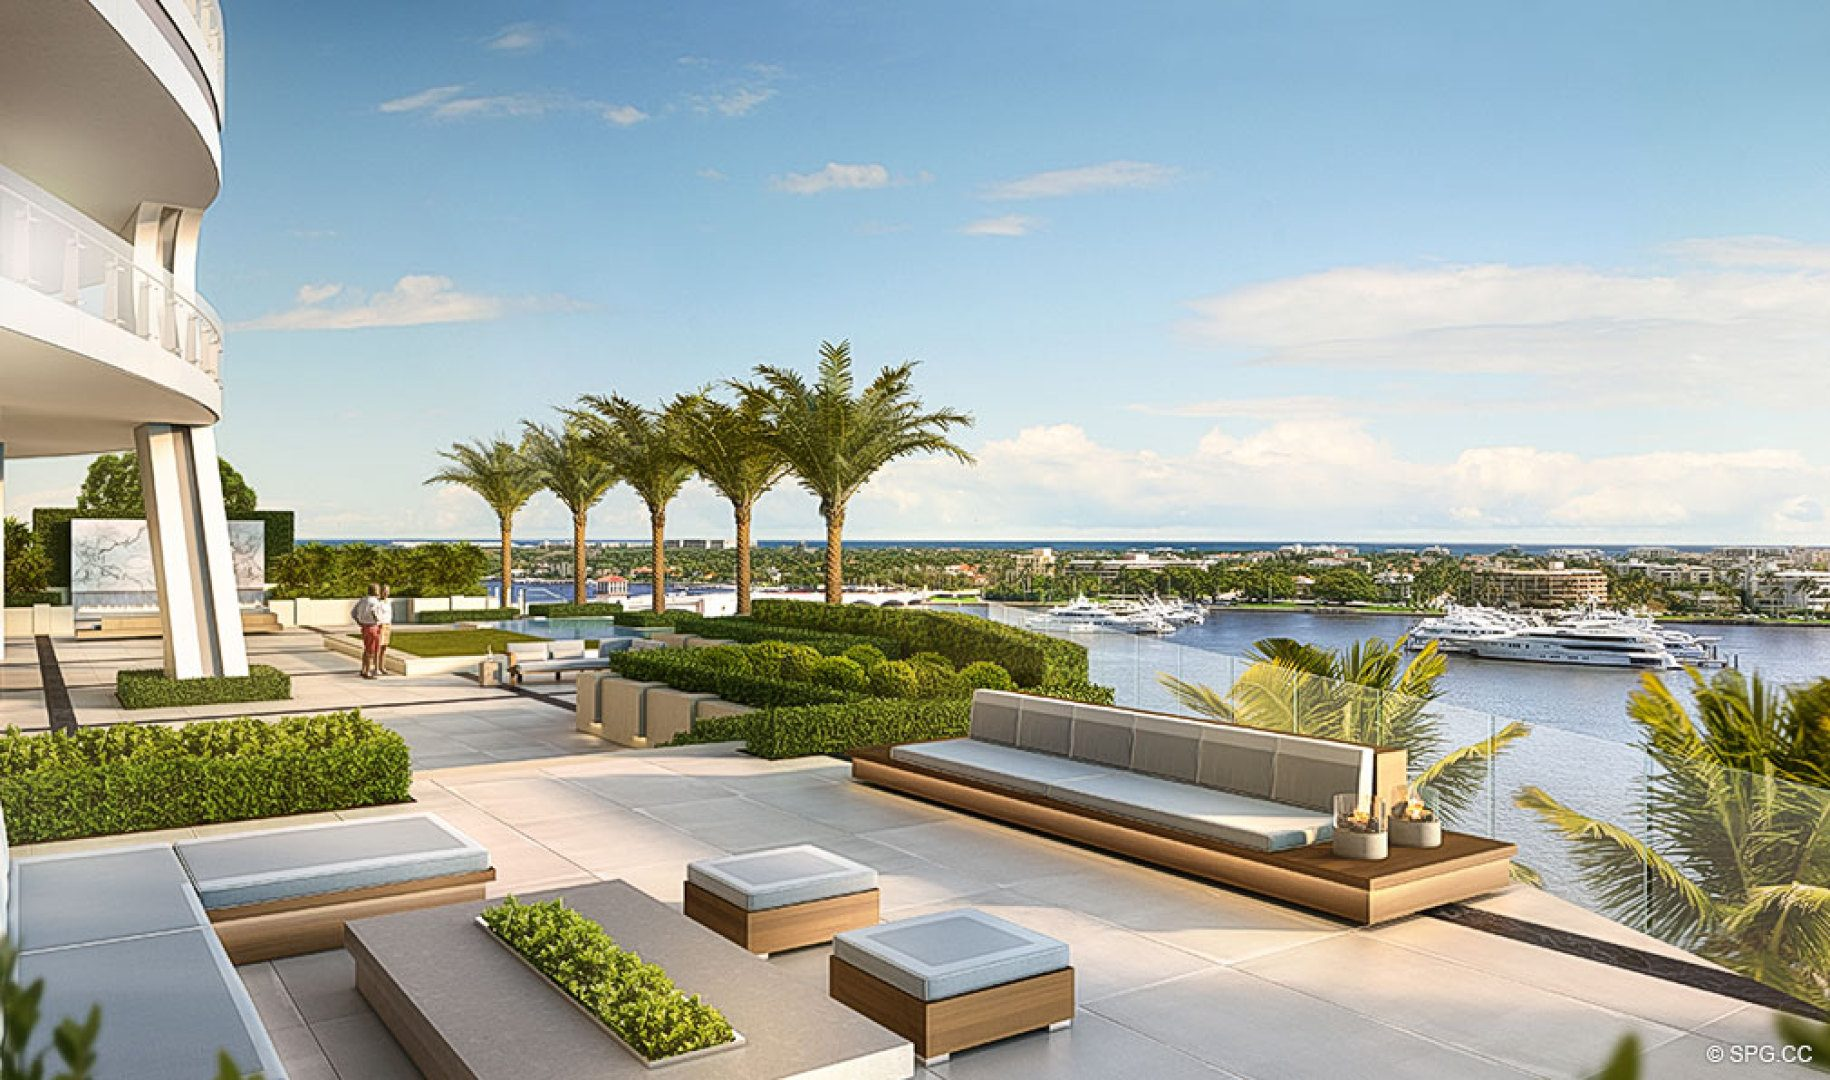 Amenity Terrace View from The Bristol, Luxury Waterfront Condos in West Palm Beach, Florida 33401